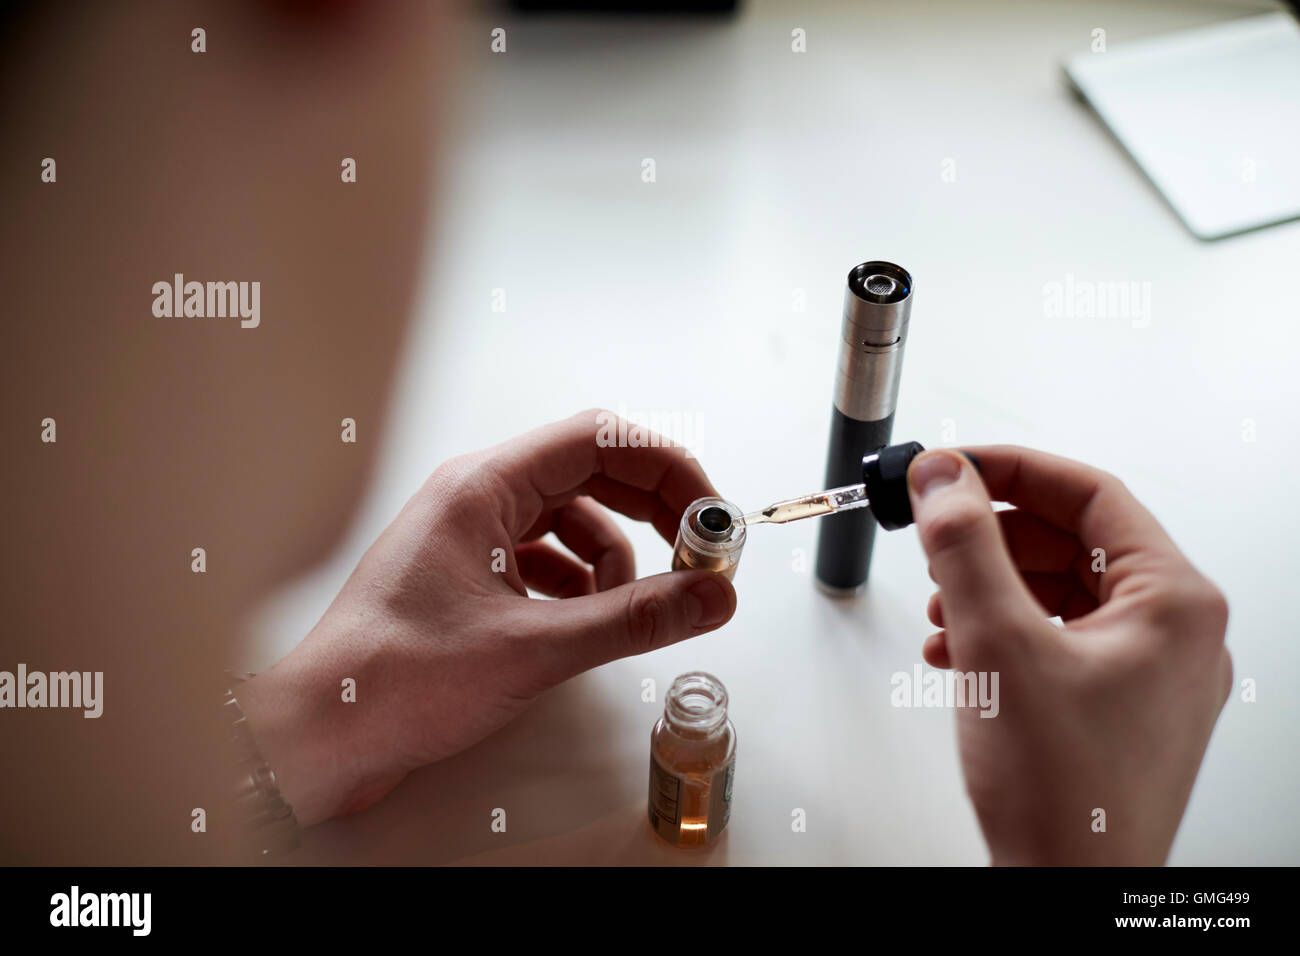 Close Up Of Man Preparing Vapourizer - Stock Image